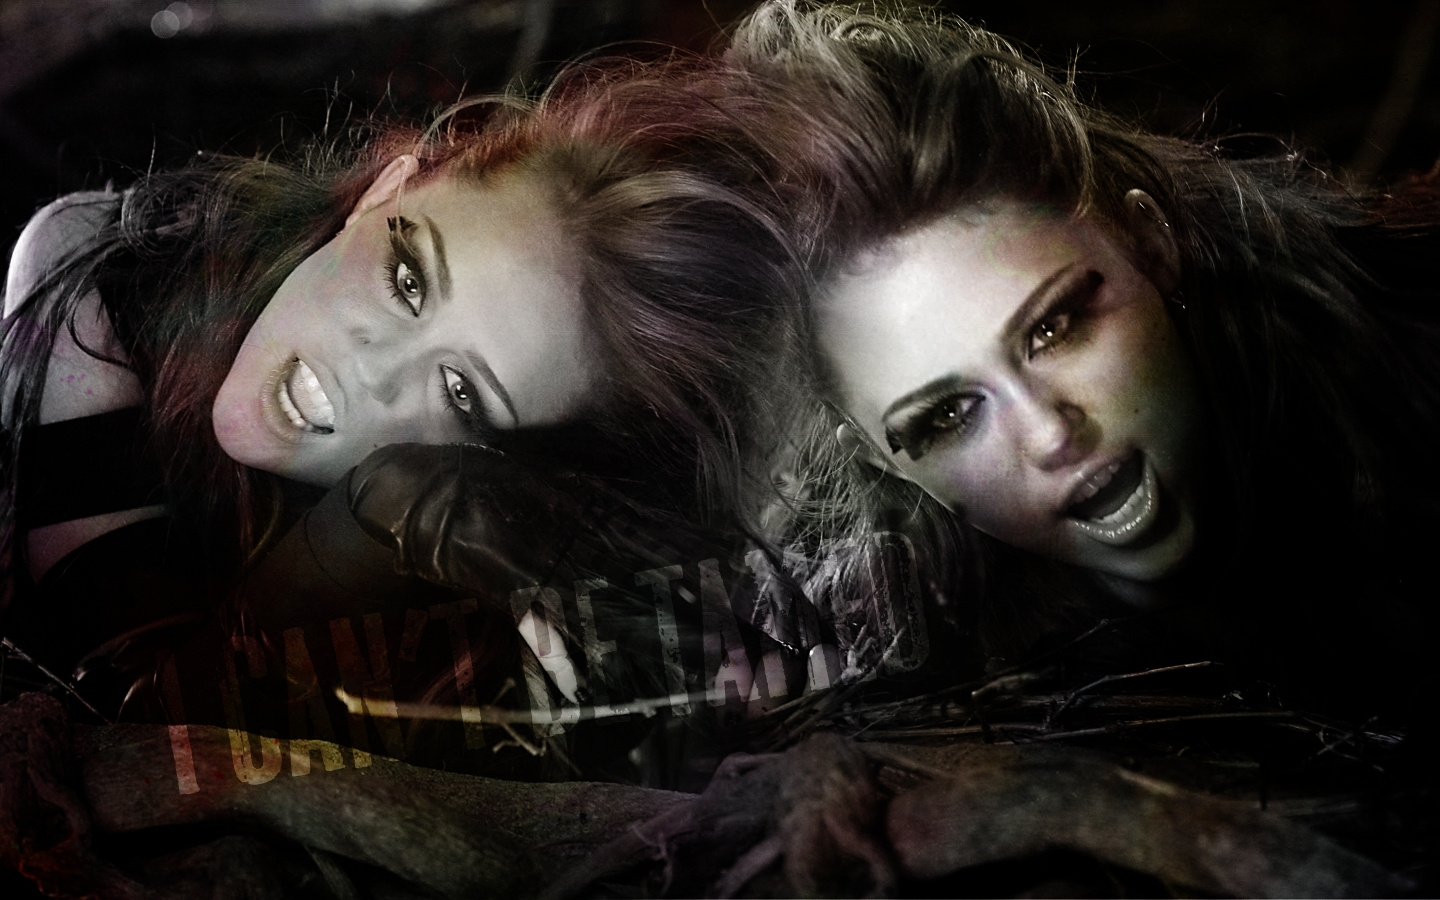 Miley can't be tamed - miley-cyrus wallpaper